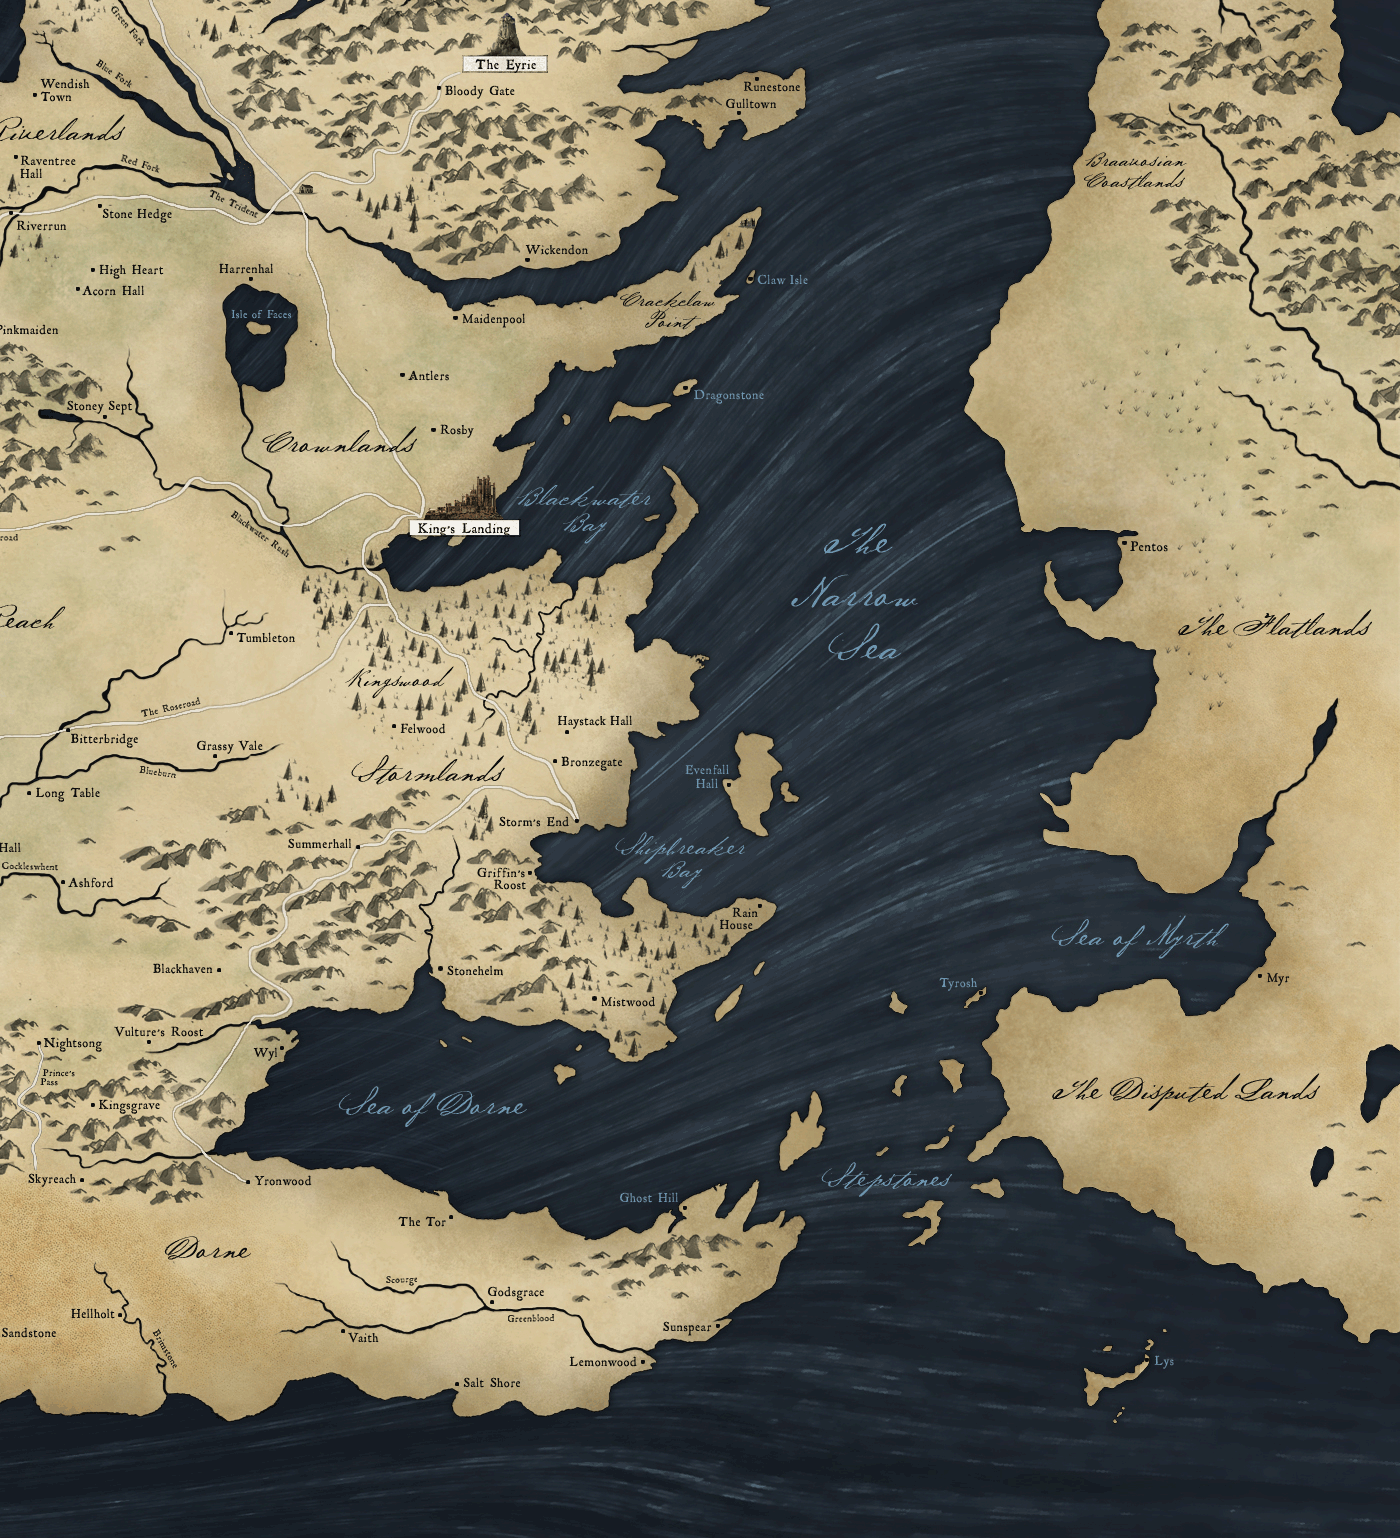 Hbo game of thrones viewers guide with a fancy map syfy fantasy hbo game of thrones viewers guide with a fancy map gumiabroncs Gallery